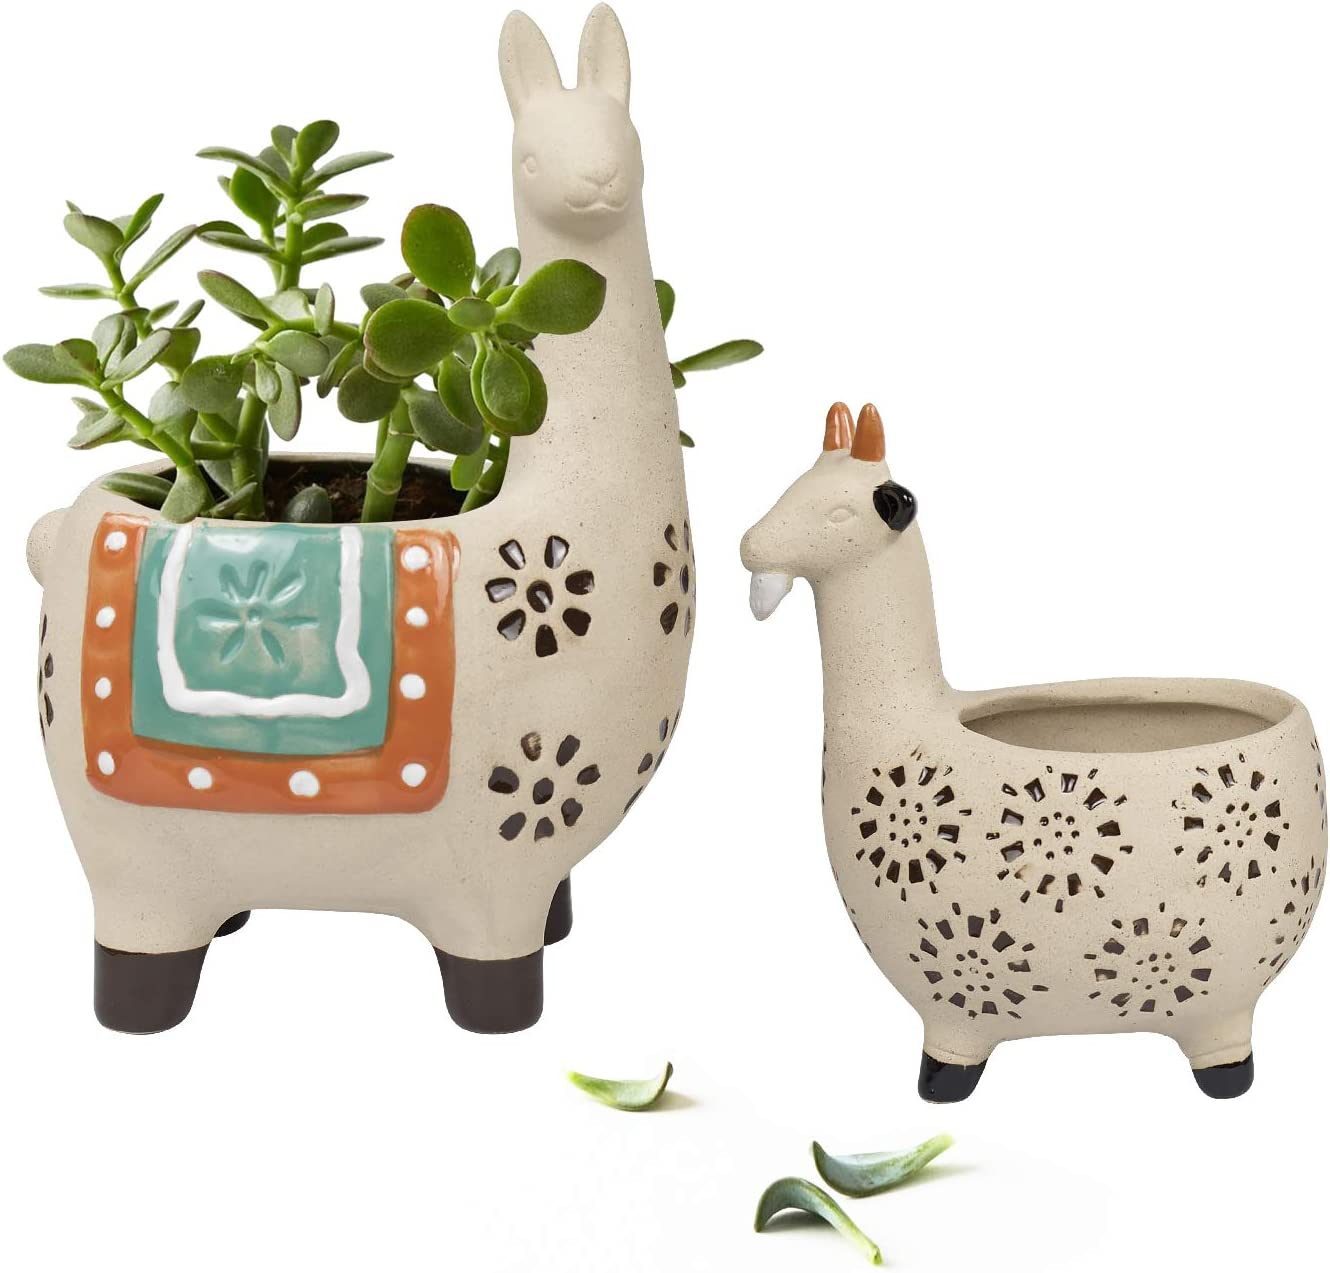 Ceramic Animal Succulent Planter Pots - 6.1 + 4.5 inch Cute Alpaca/Llama & Goat Rough Pottery Unglazed Desktop Flower Plant Pots Indoor with Drainage for Herb Cactus Air Plants, Home Decor Gifts